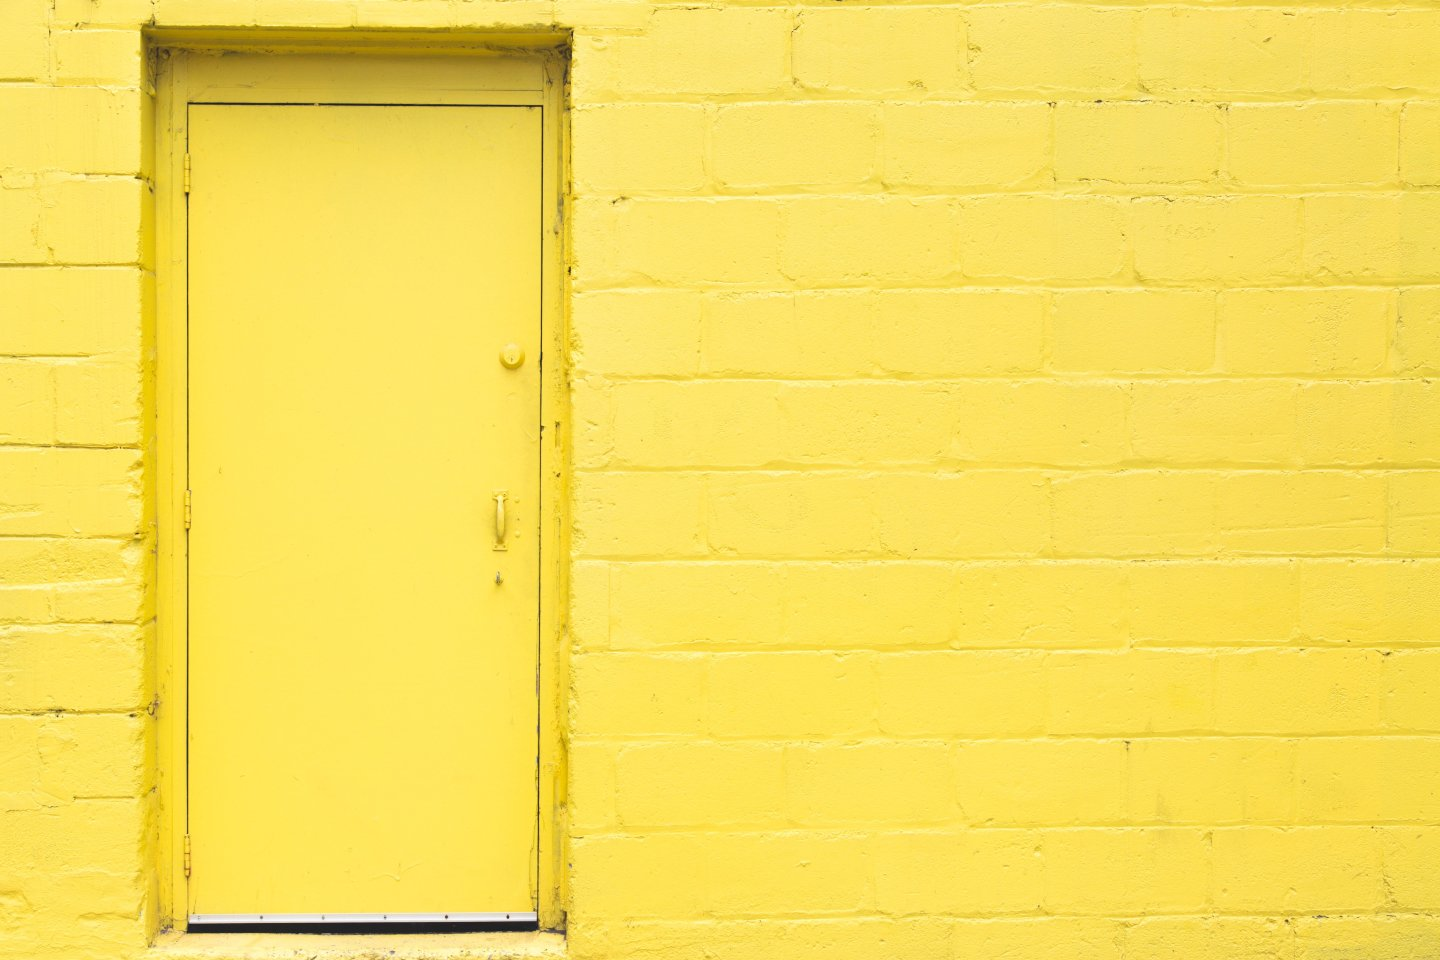 yellow-door-wall 4460x4460